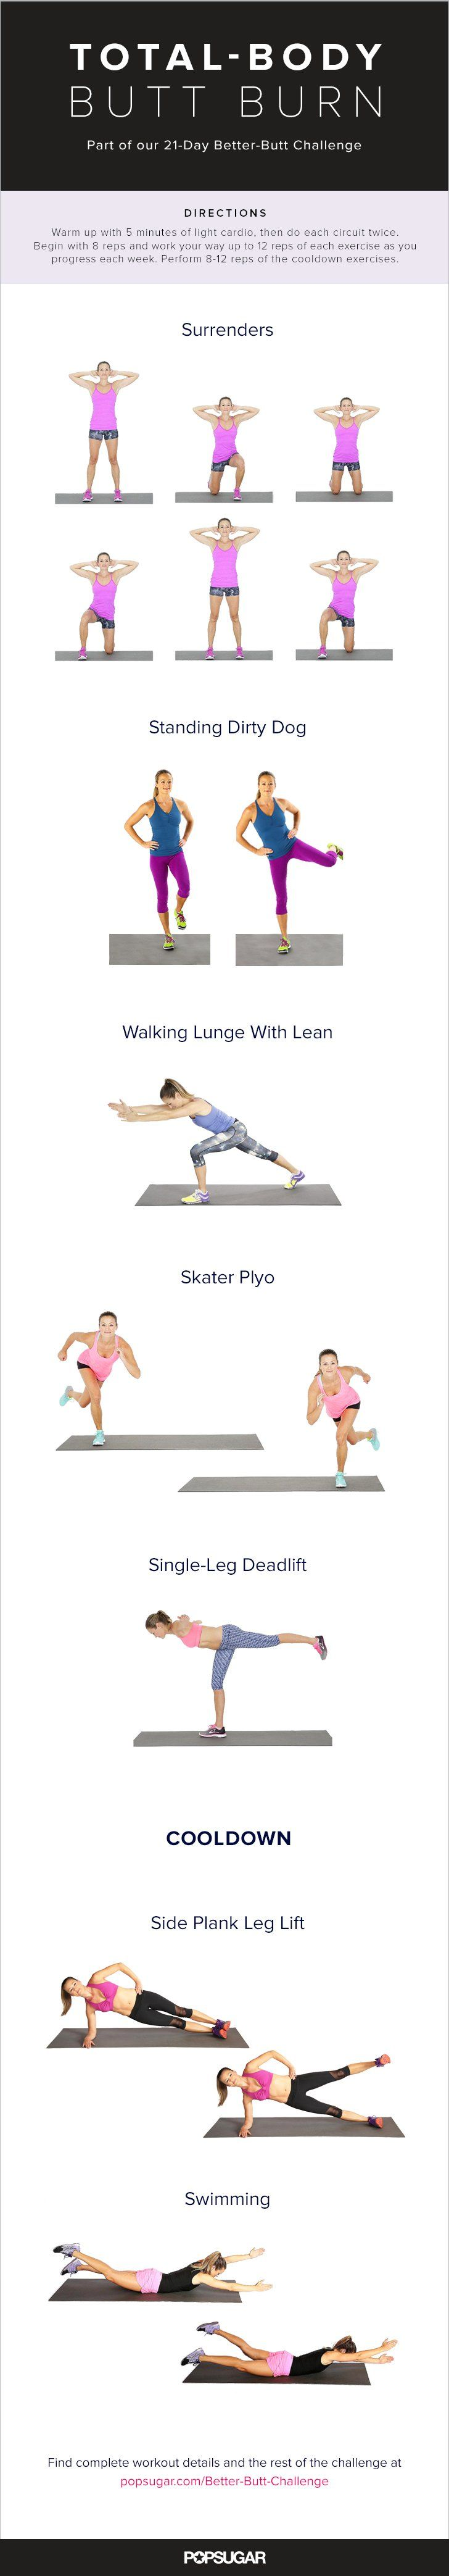 Pin for Later: Better-Butt Challenge: A Bodyweight Workout That Challenges Your Backside